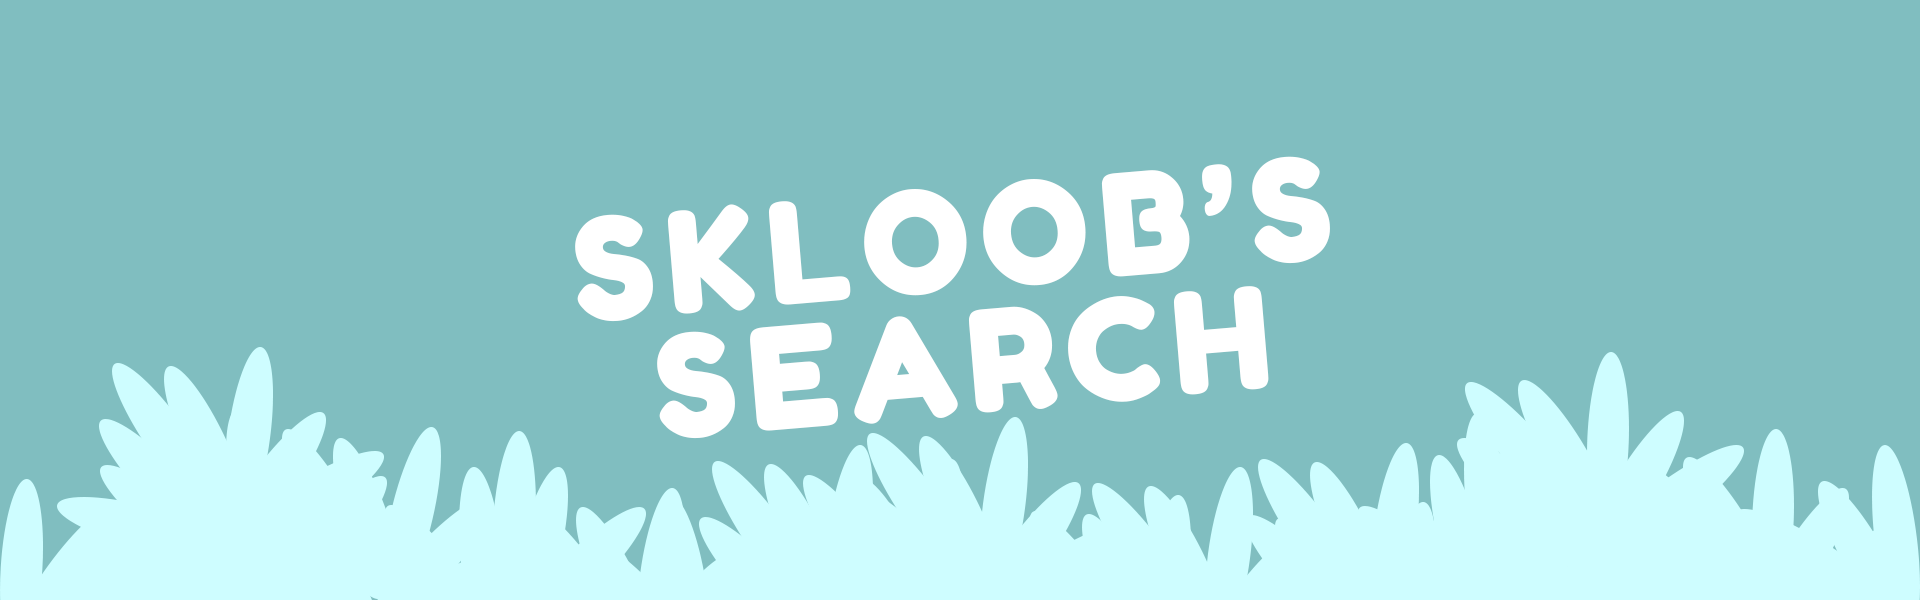 Skloob's Search